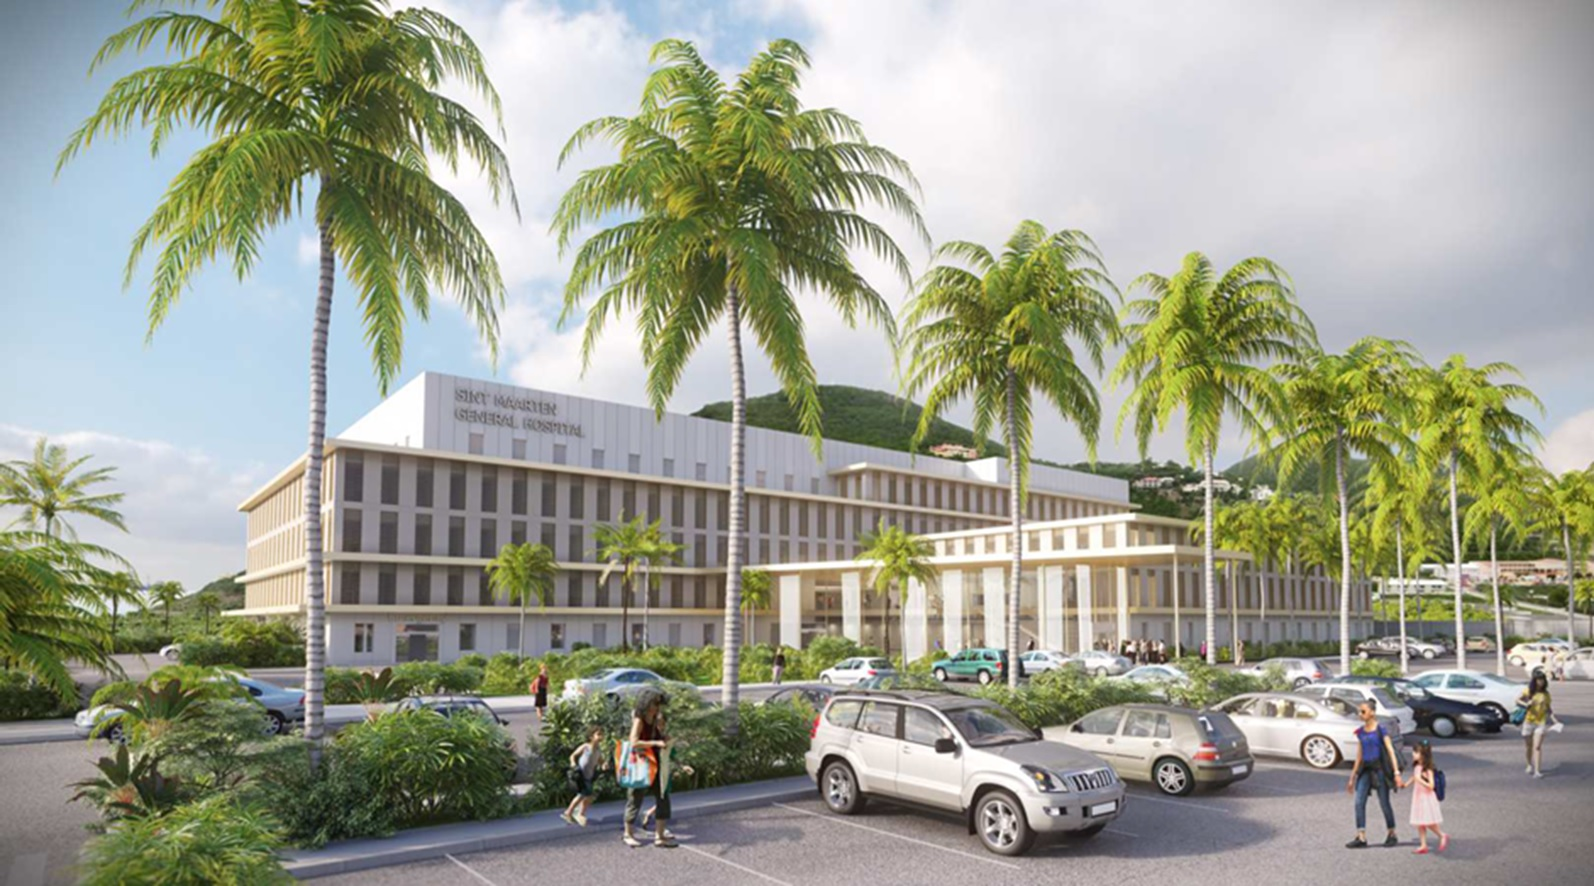 SMMC provides update on new hospital project